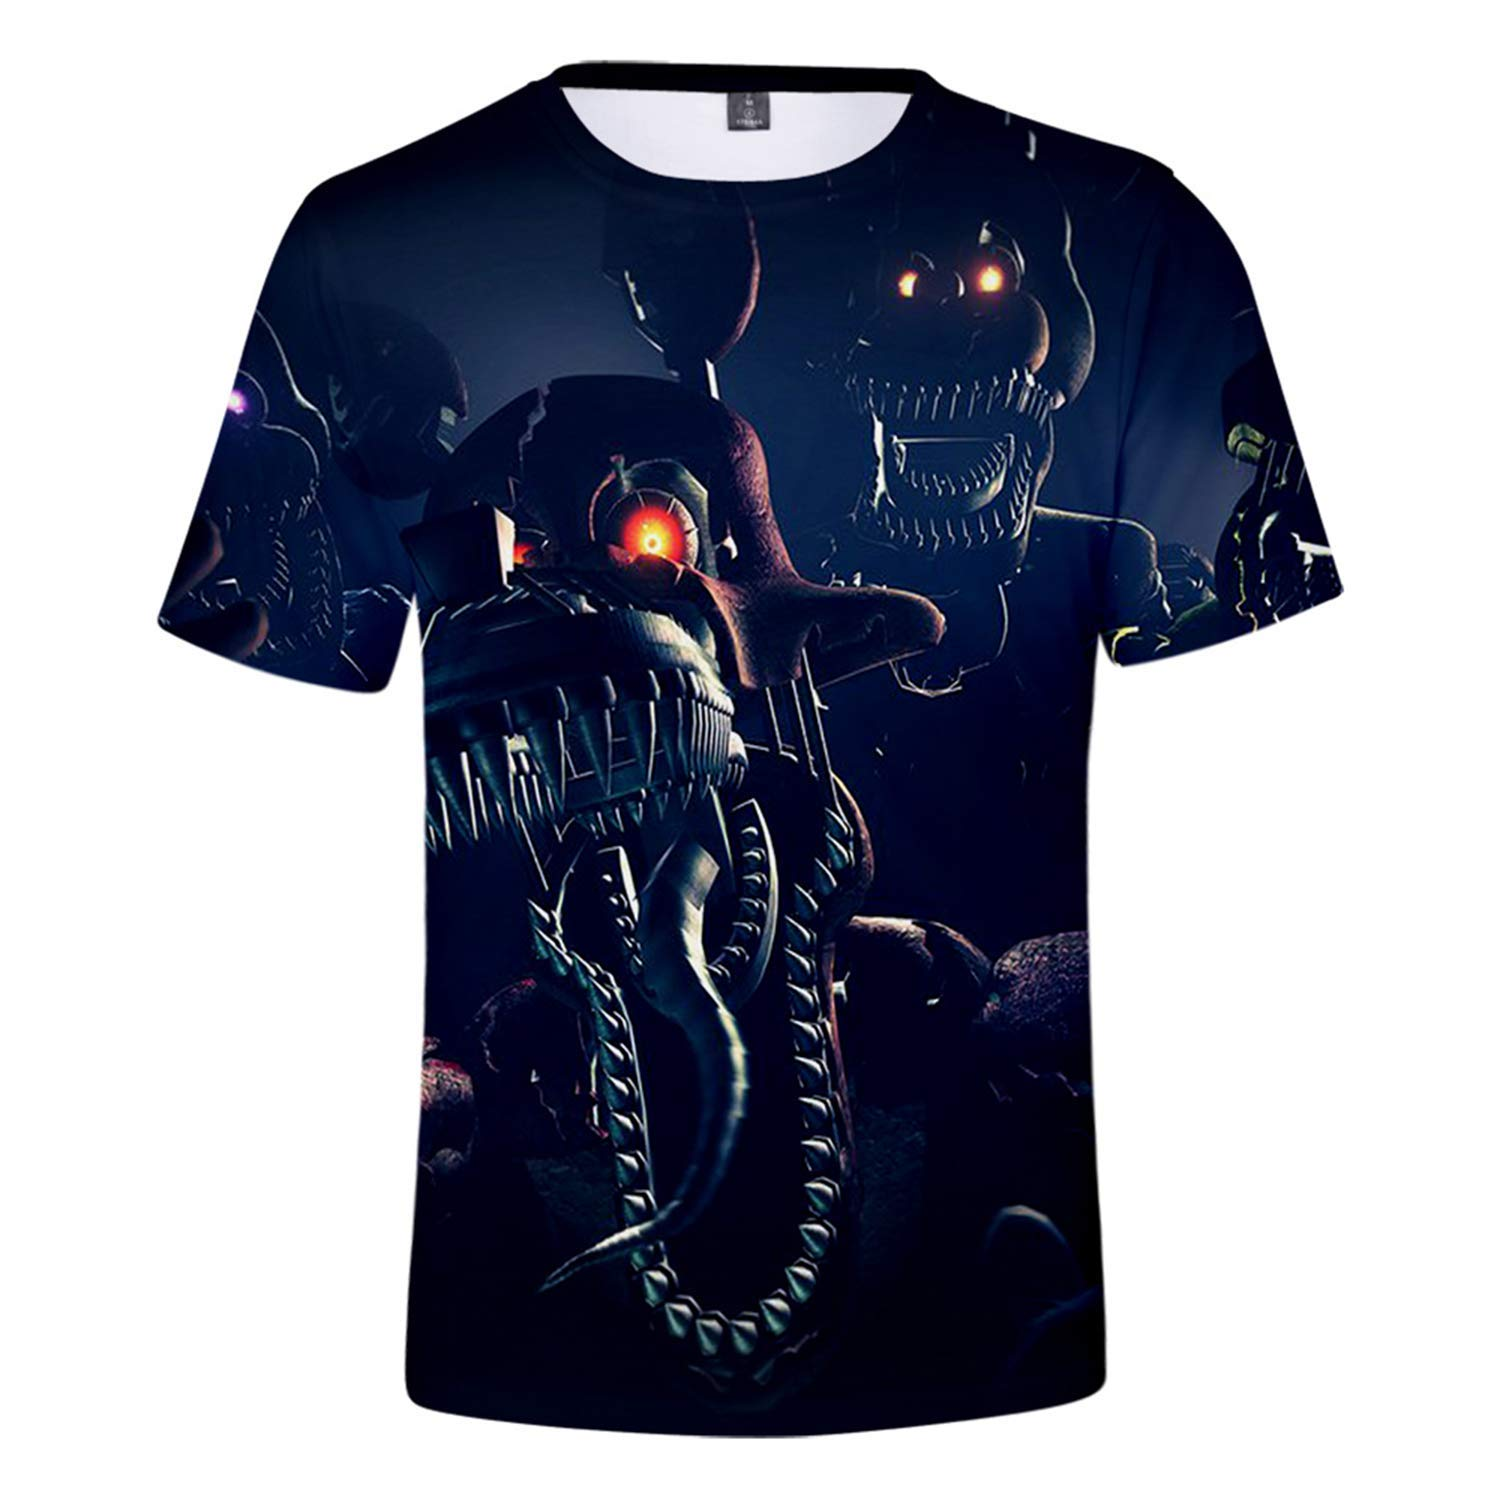 Dio Fortunato Five Nights At Freddys 4 Unisex 3D Stampato Estate Casuale Manica Corta T Shirt Tees